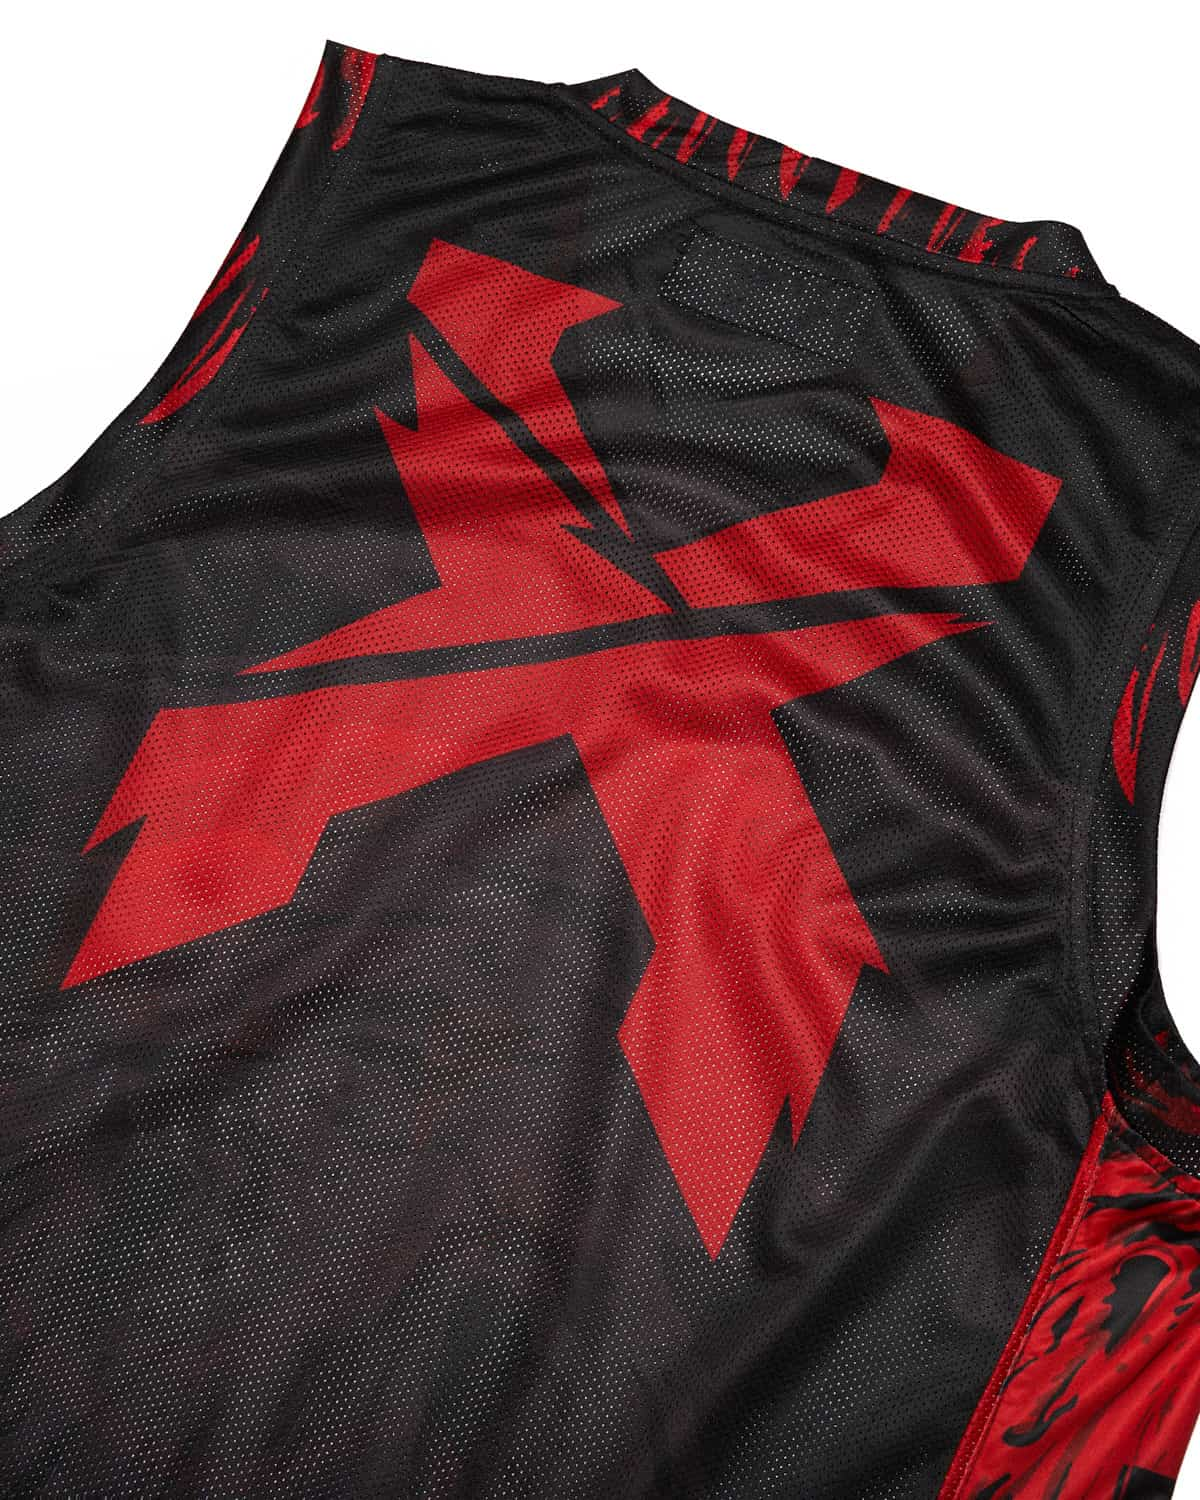 'Excision Rex' Basketball Jersey - Red/Black